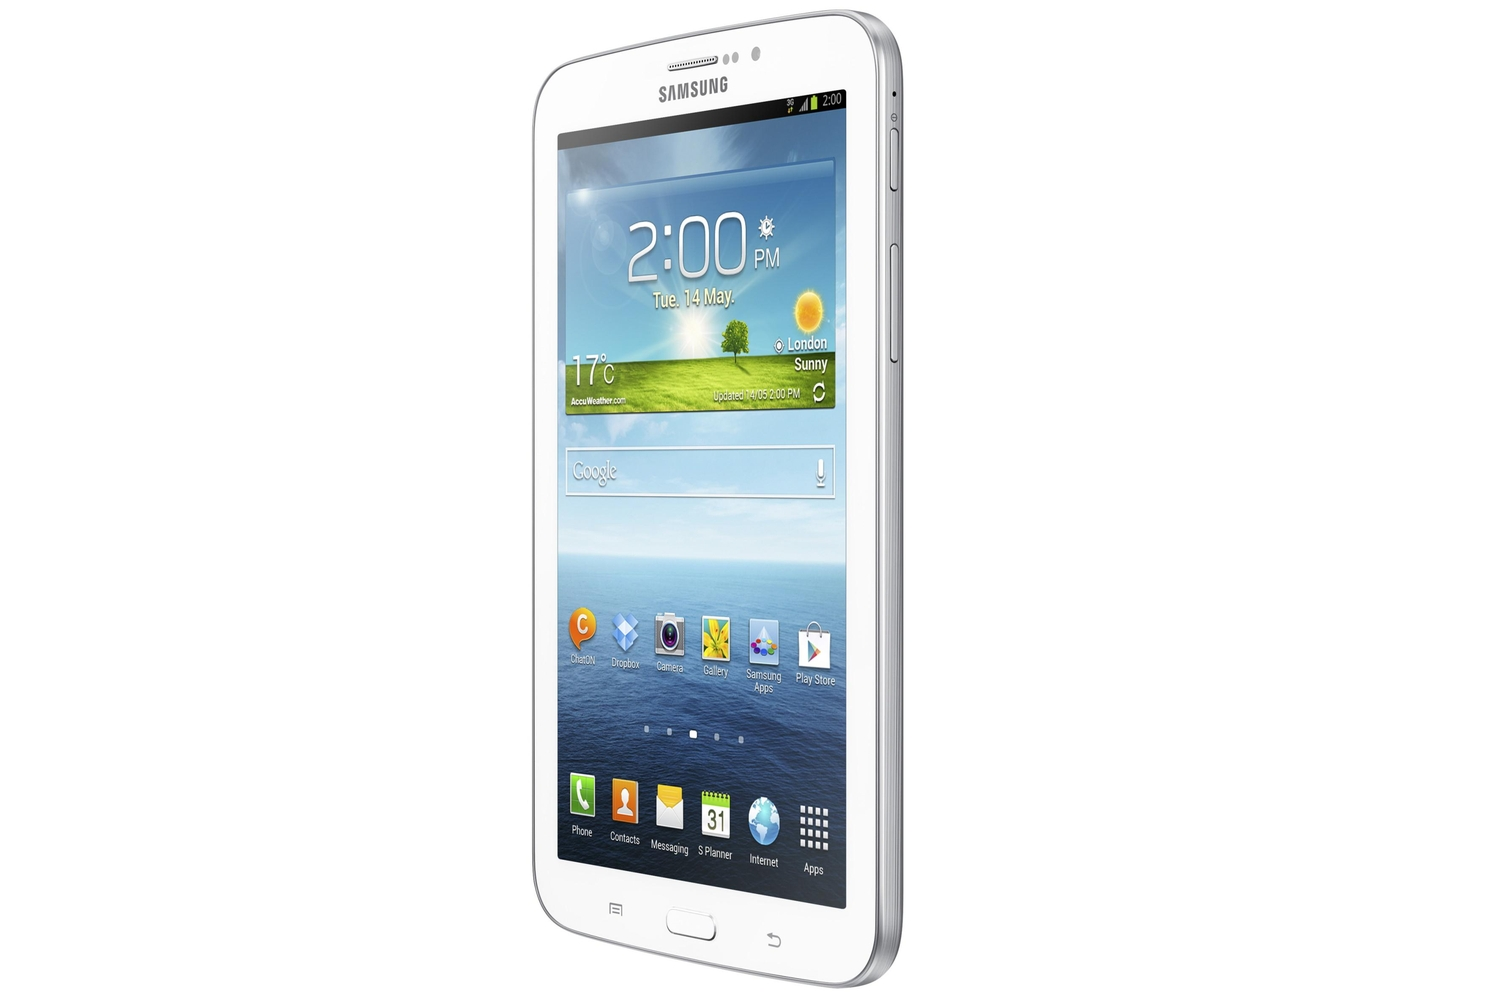 Samsung Galaxy Tab 3 7.0 Review: The Galaxy Tab 3 7.0 is ...